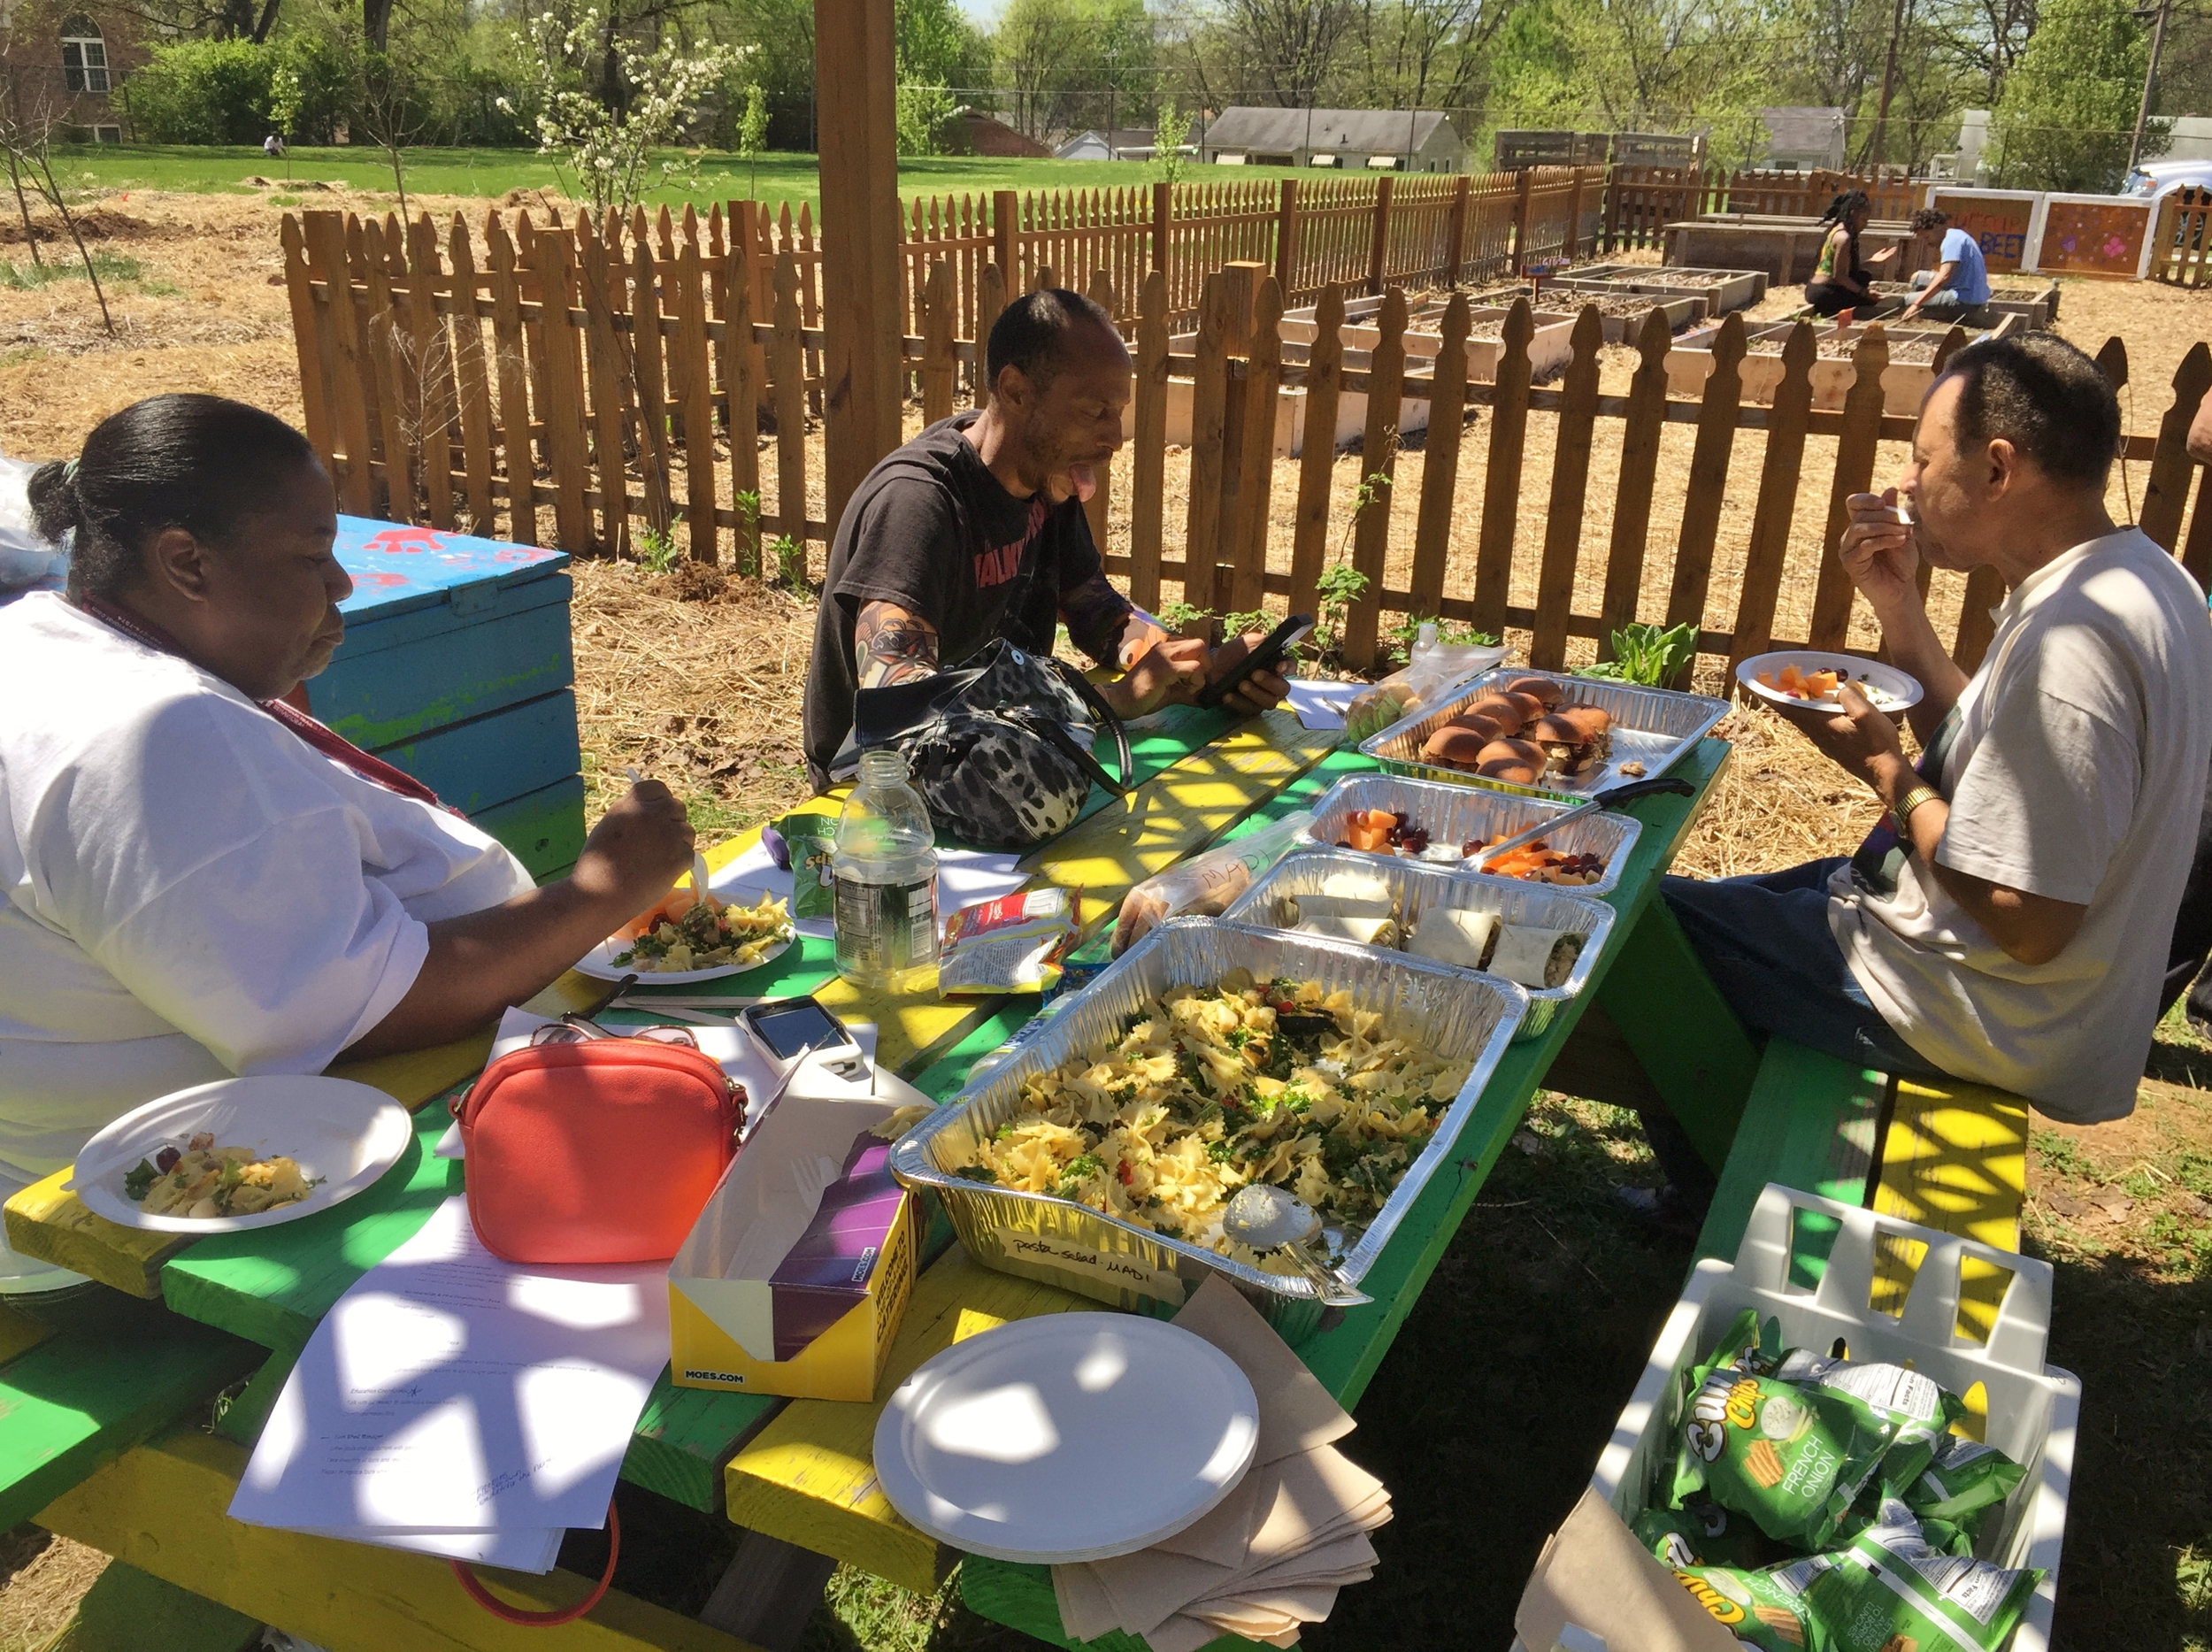 After planting spring crops and working together to get seed potatoes in the ground, the McGruder Green Thumbers gathered around picnic tables to relax and enjoy a delicious lunch.